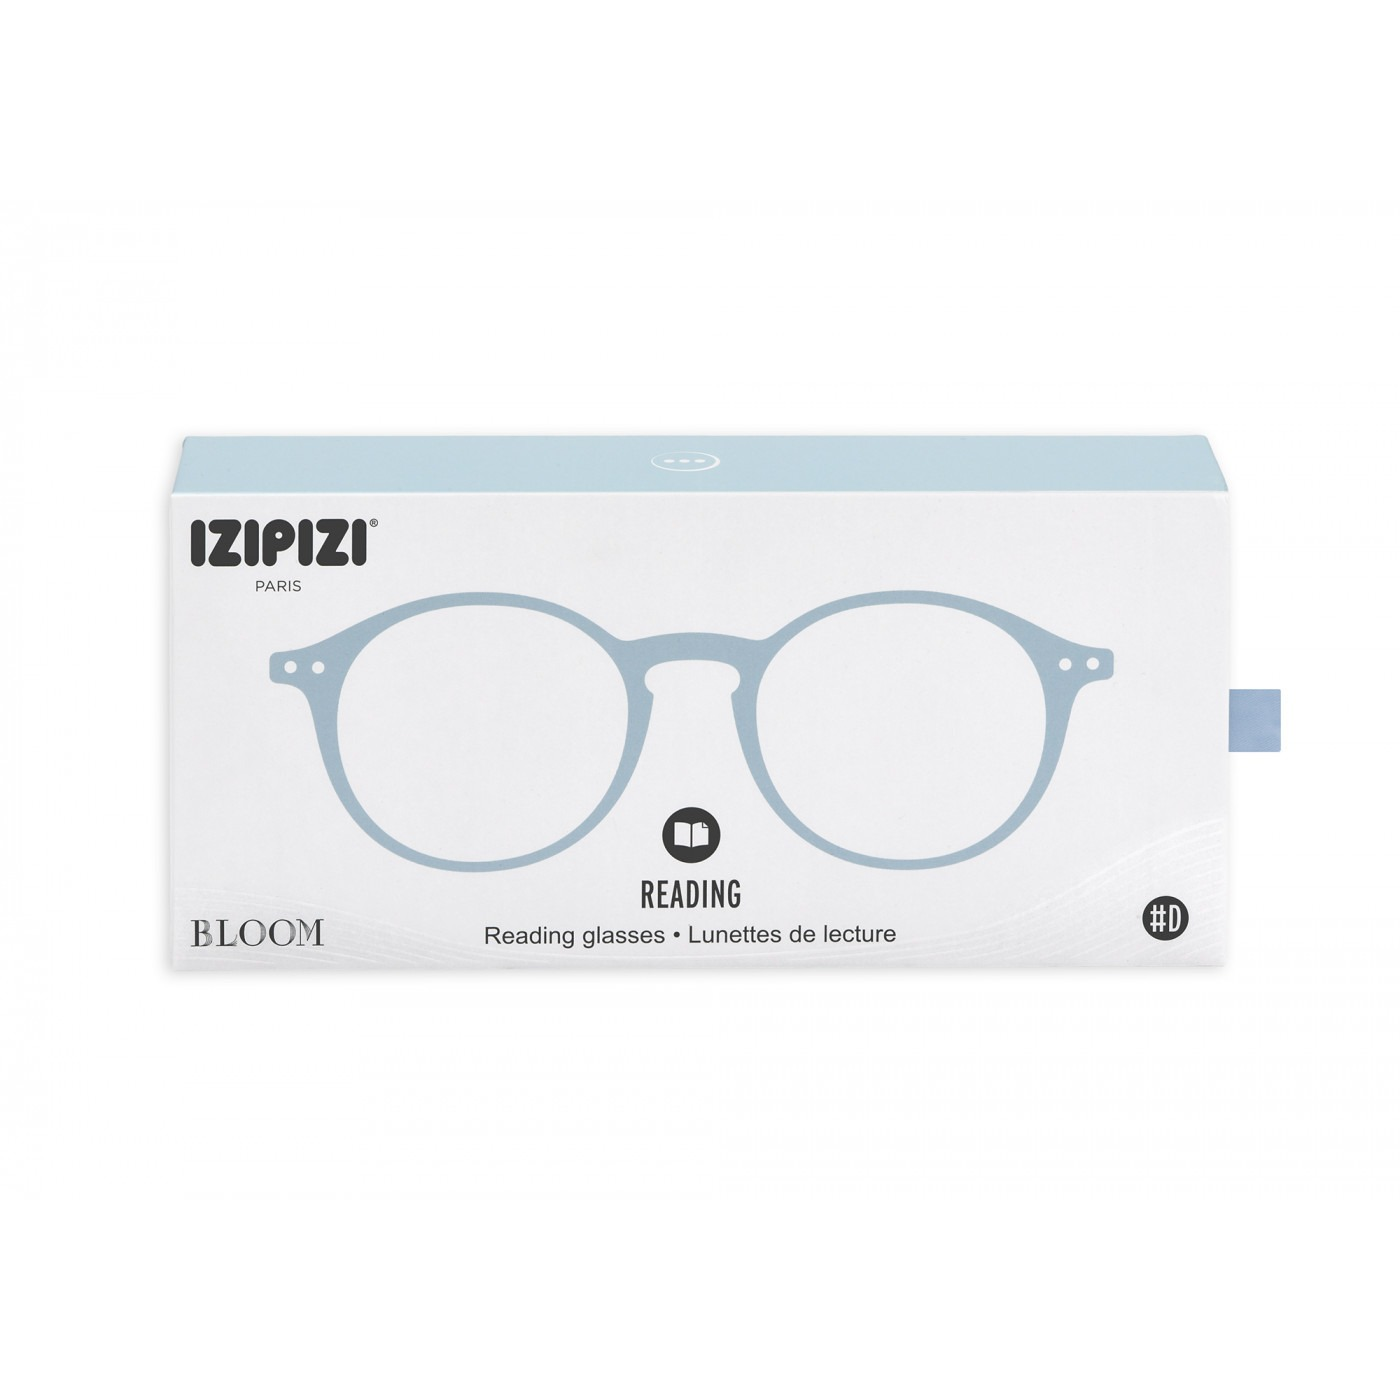 Izipizi #D Reading Glasses (Spectacles) in Aery Blue